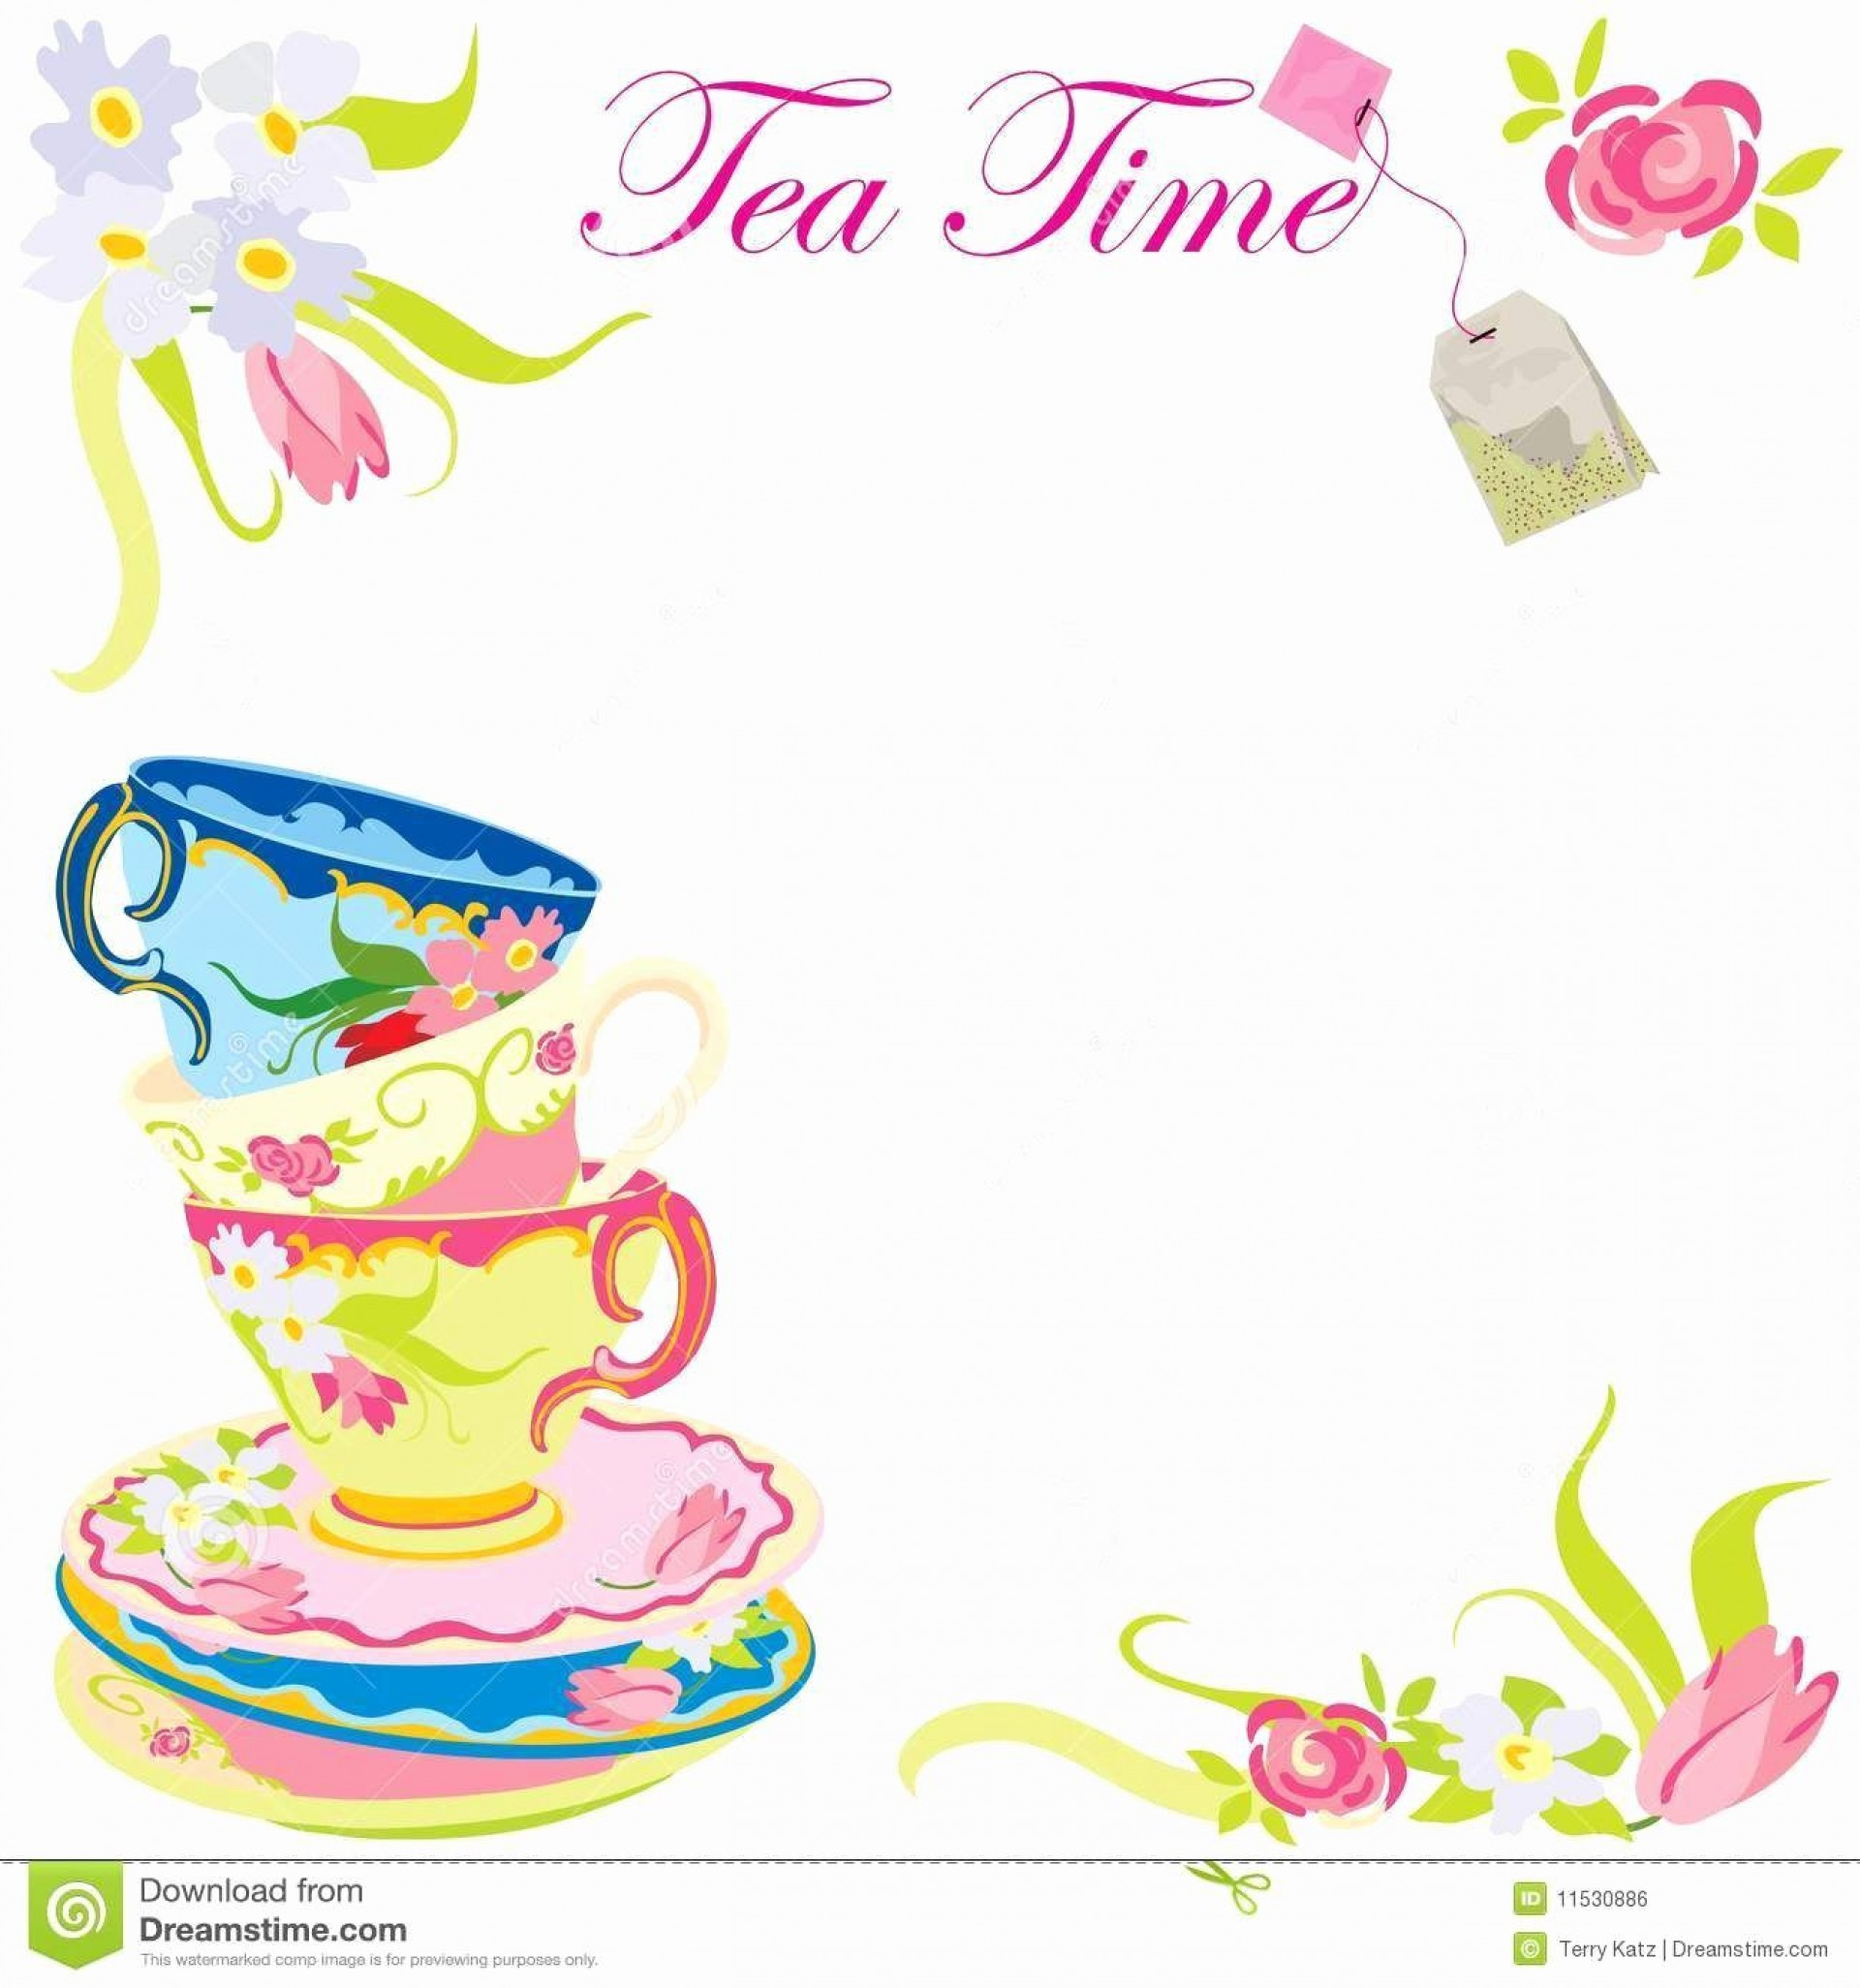 009 Stirring Tea Party Invitation Template Sample  Online Letter1920